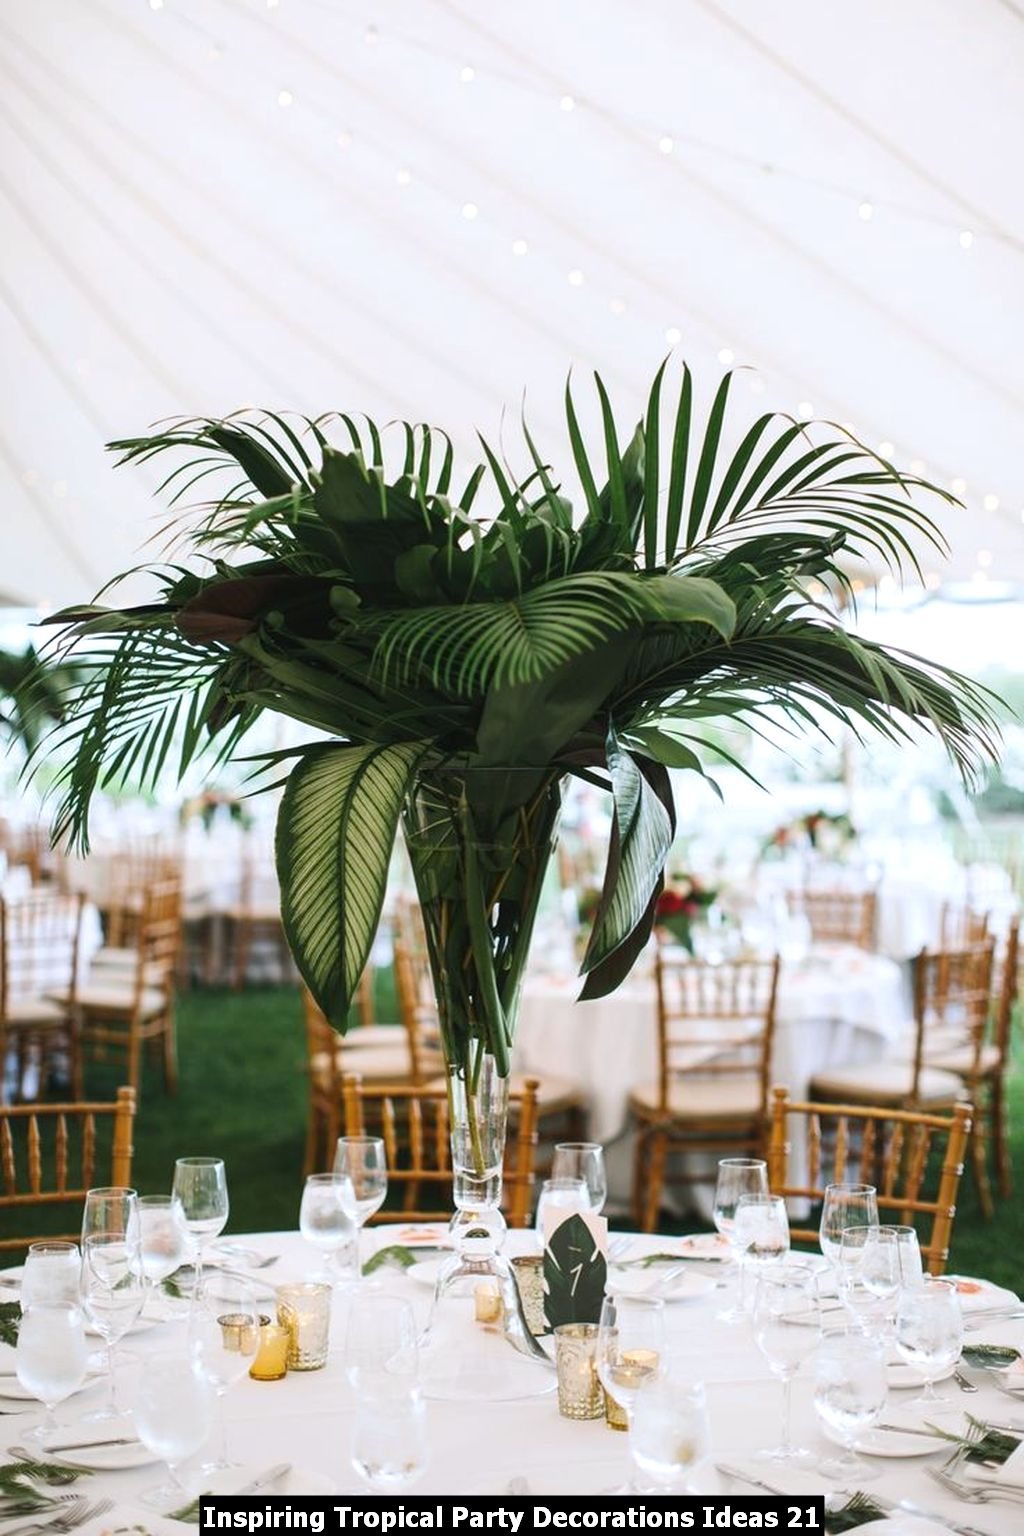 Inspiring Tropical Party Decorations Ideas 21